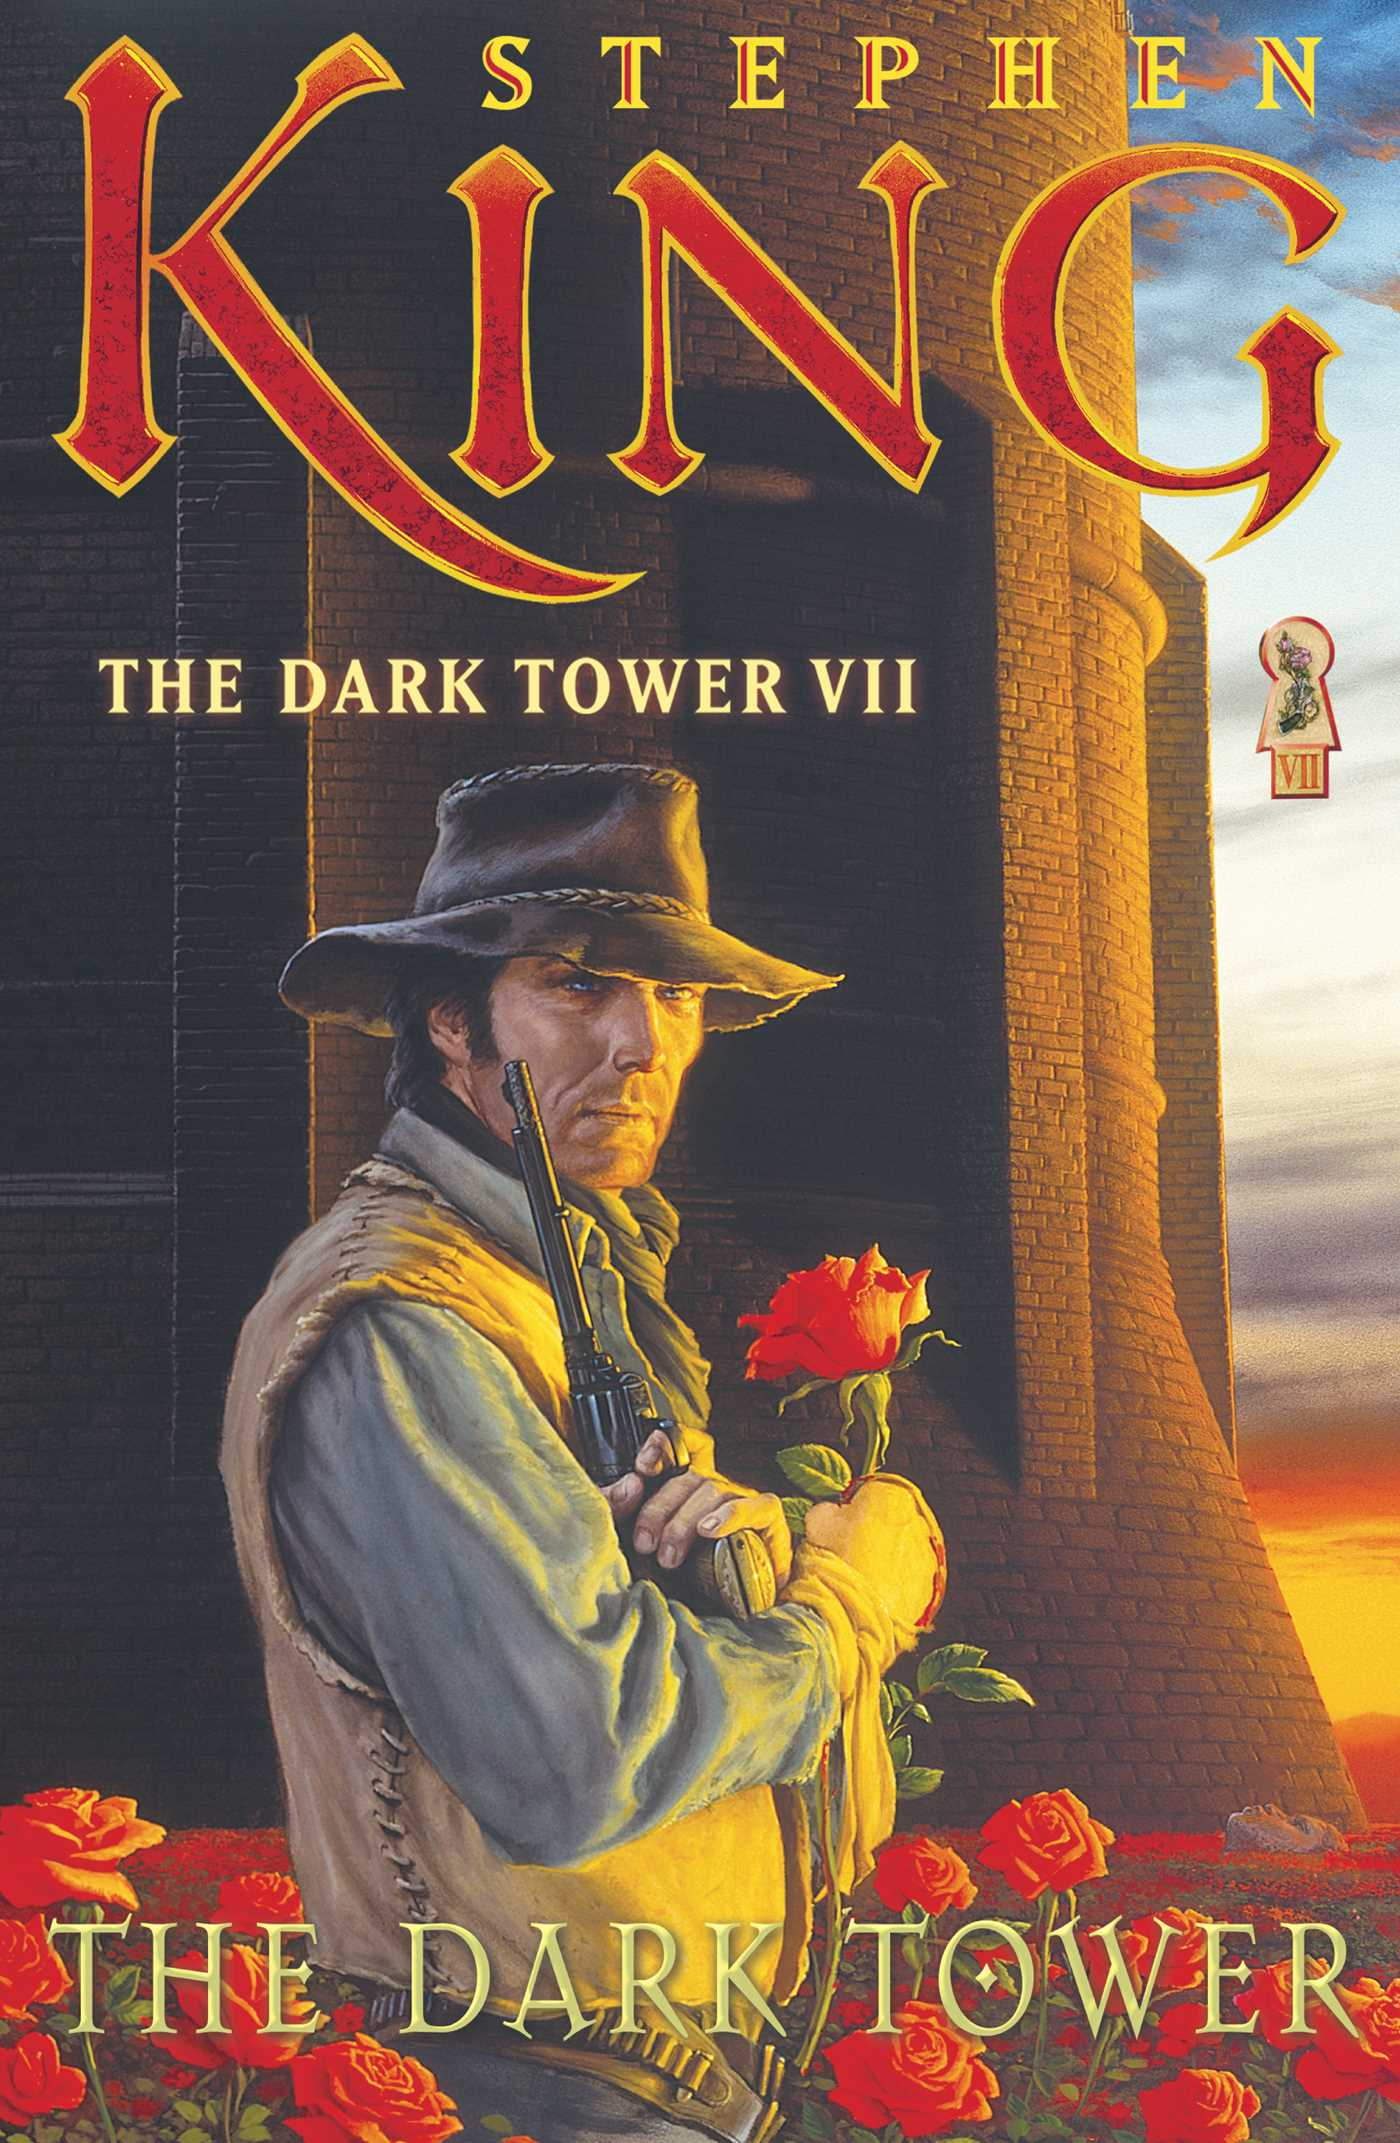 Dark-tower-vii-9780743266796_hr